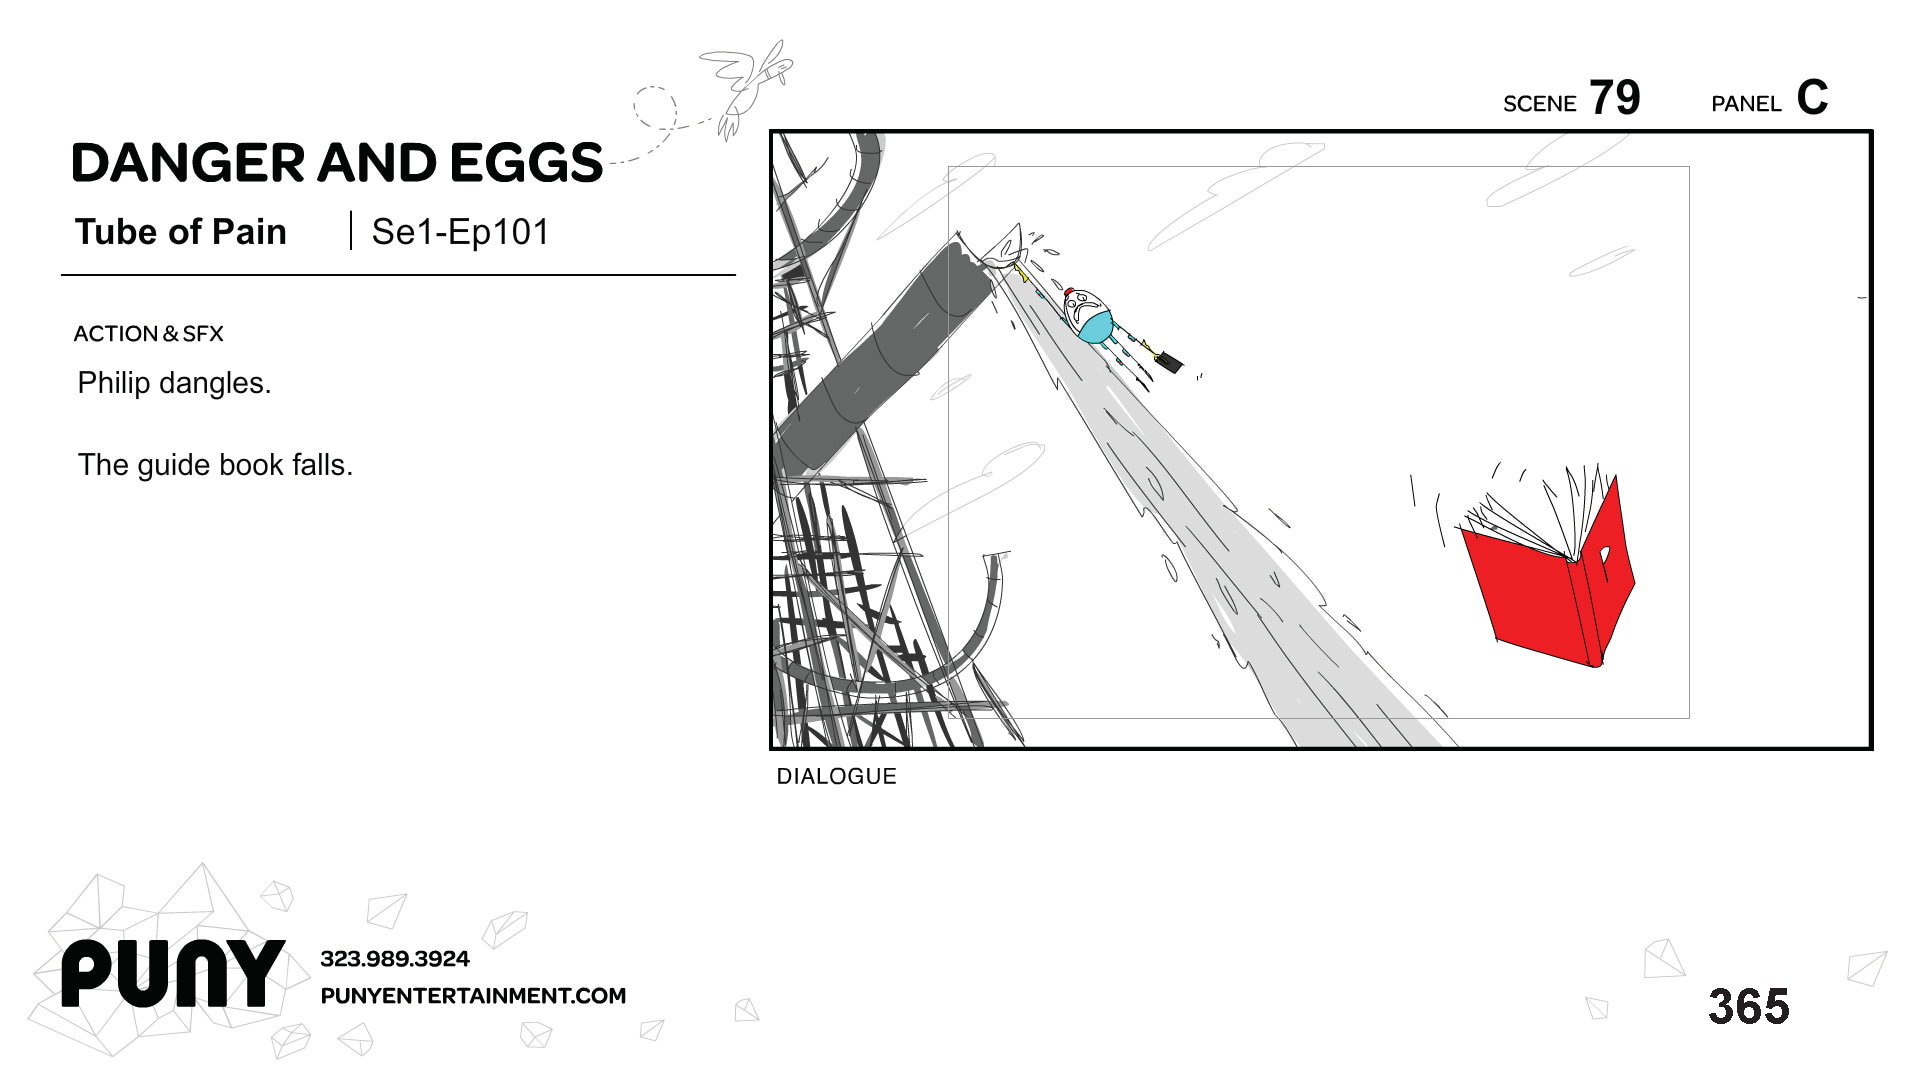 MikeOwens_STORYBOARDS_DangerAndEggs_Page_260.png